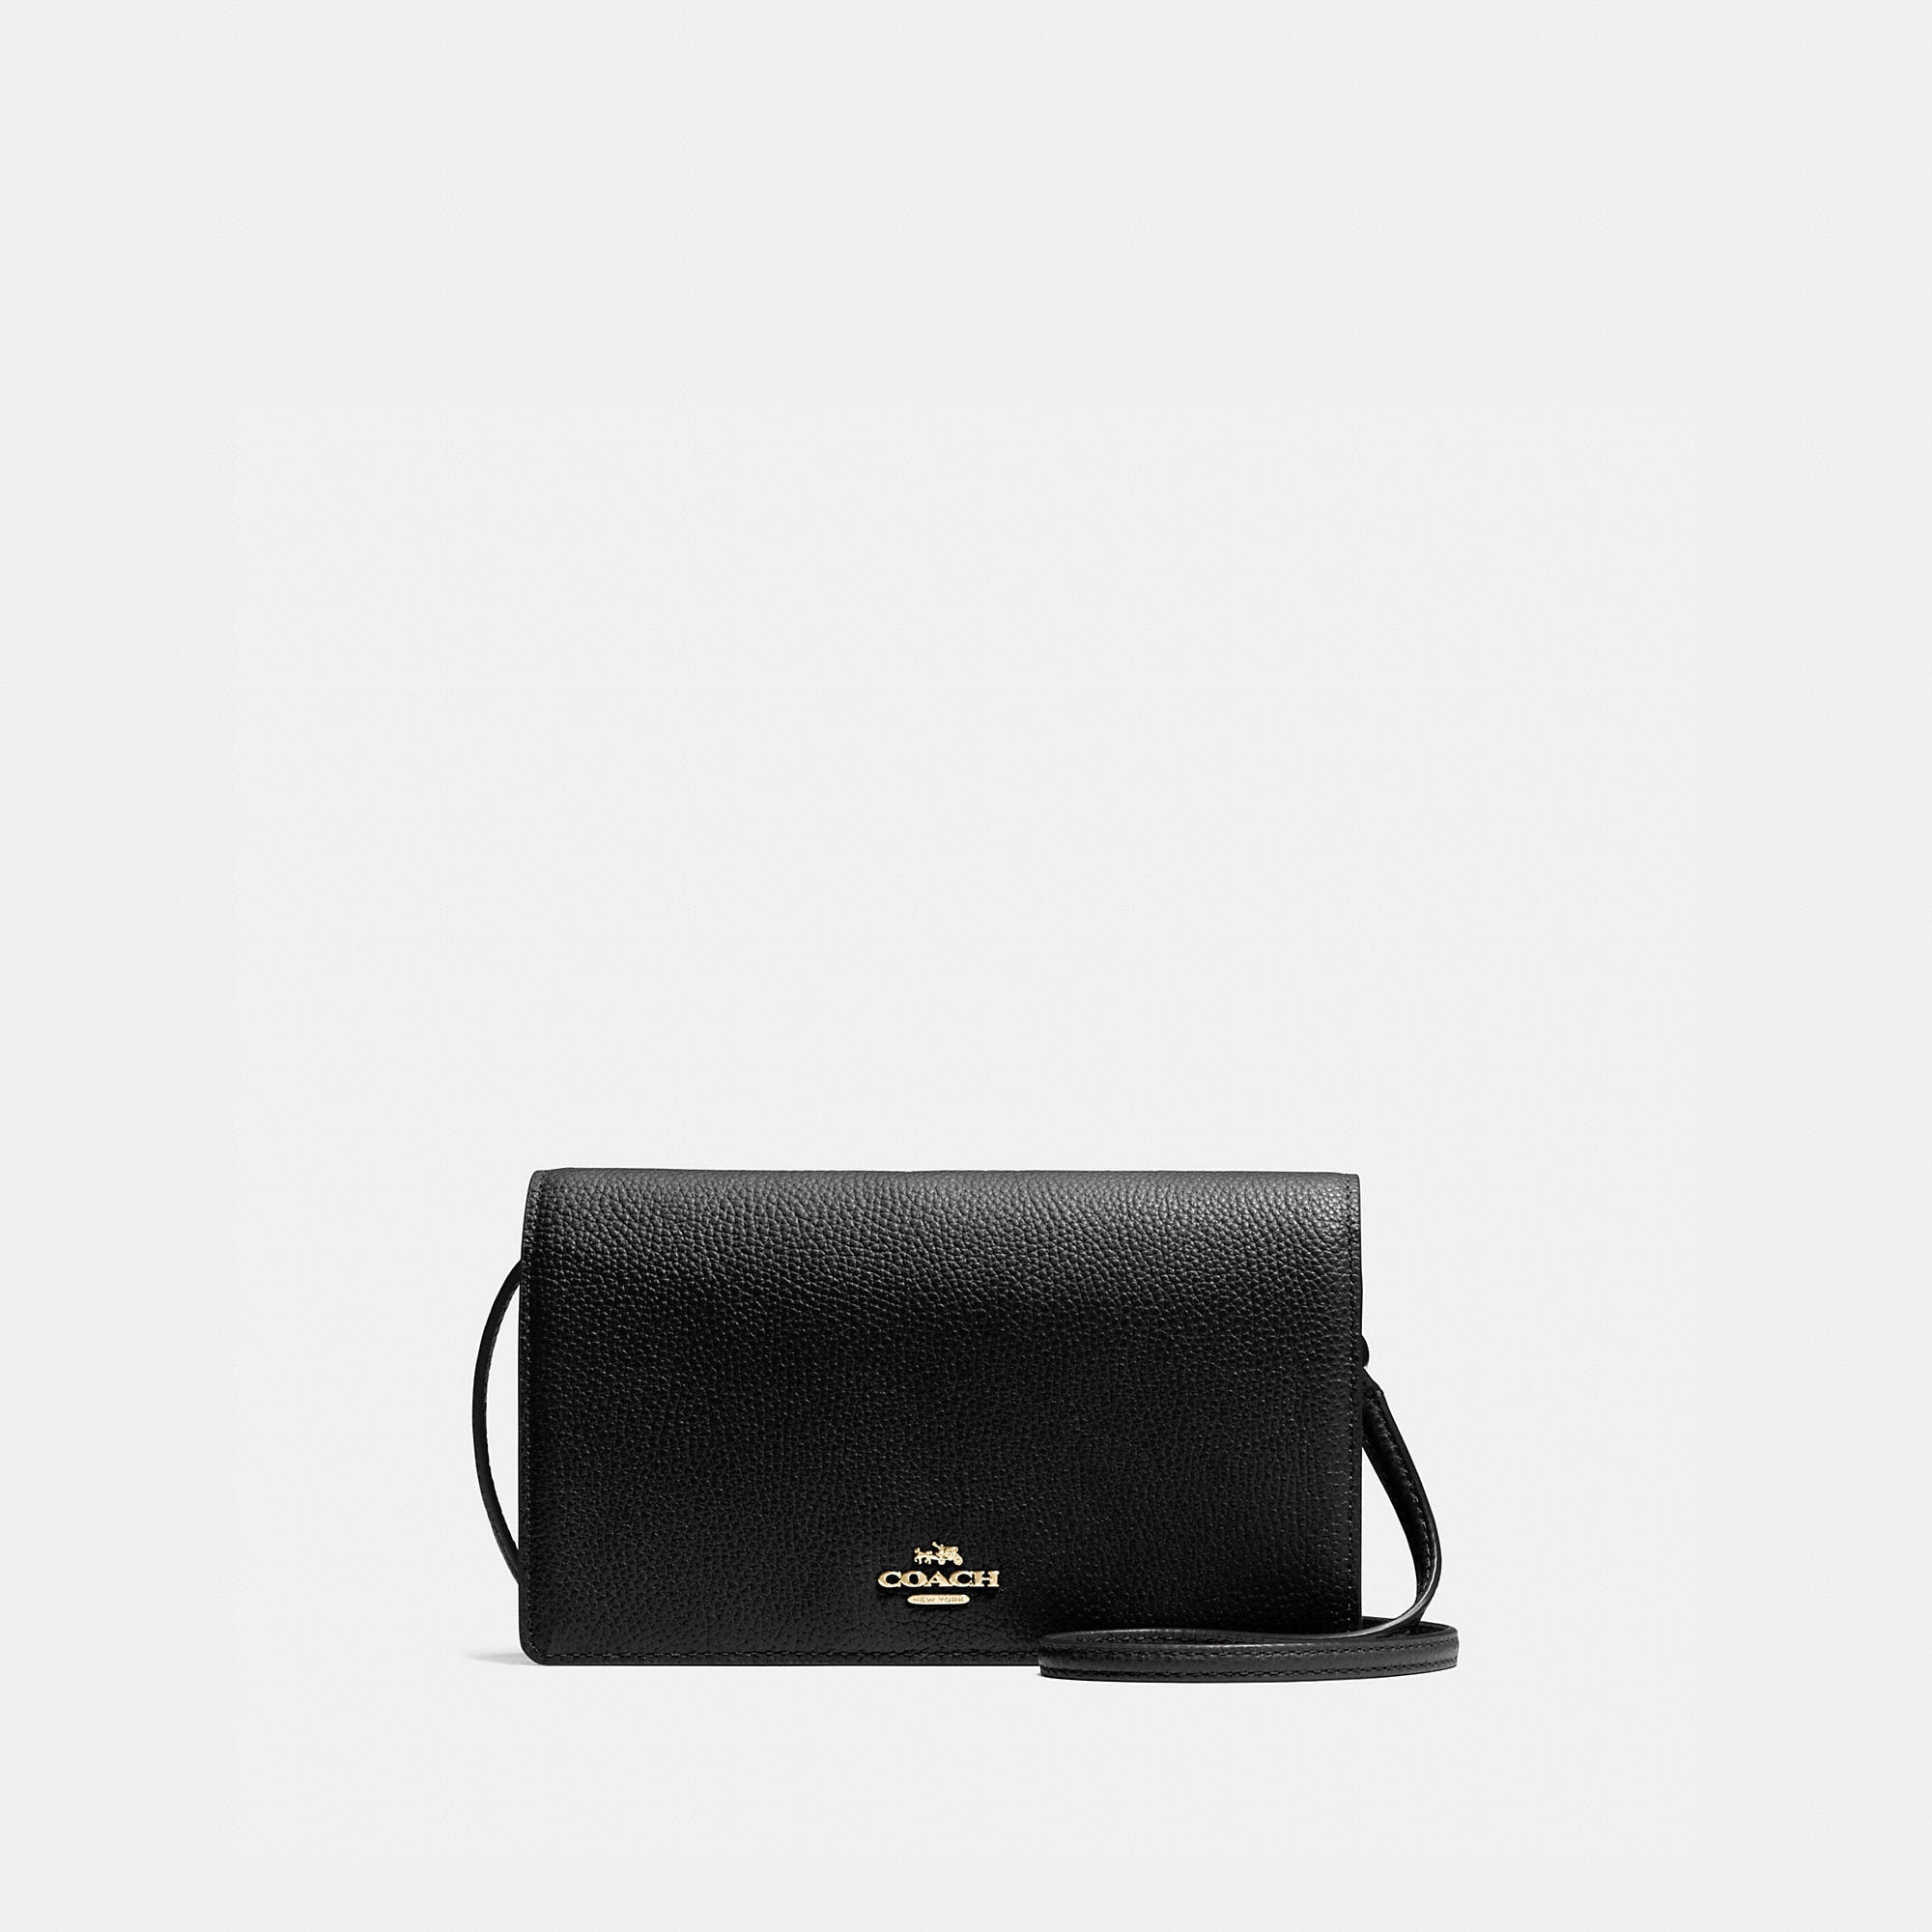 Coach Foldover Crossbody